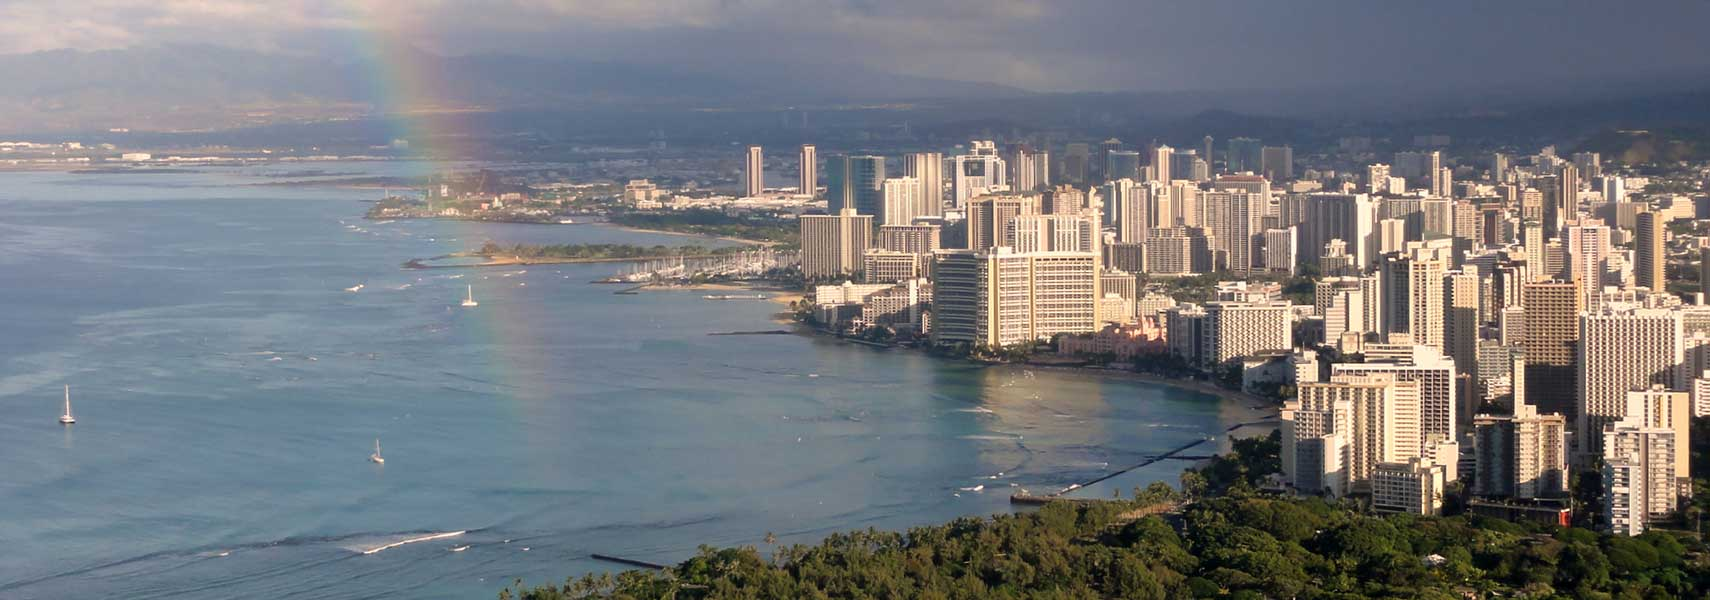 Google Map Of Honolulu Hawaii USA Nations Online Project - Hawaii map usa states